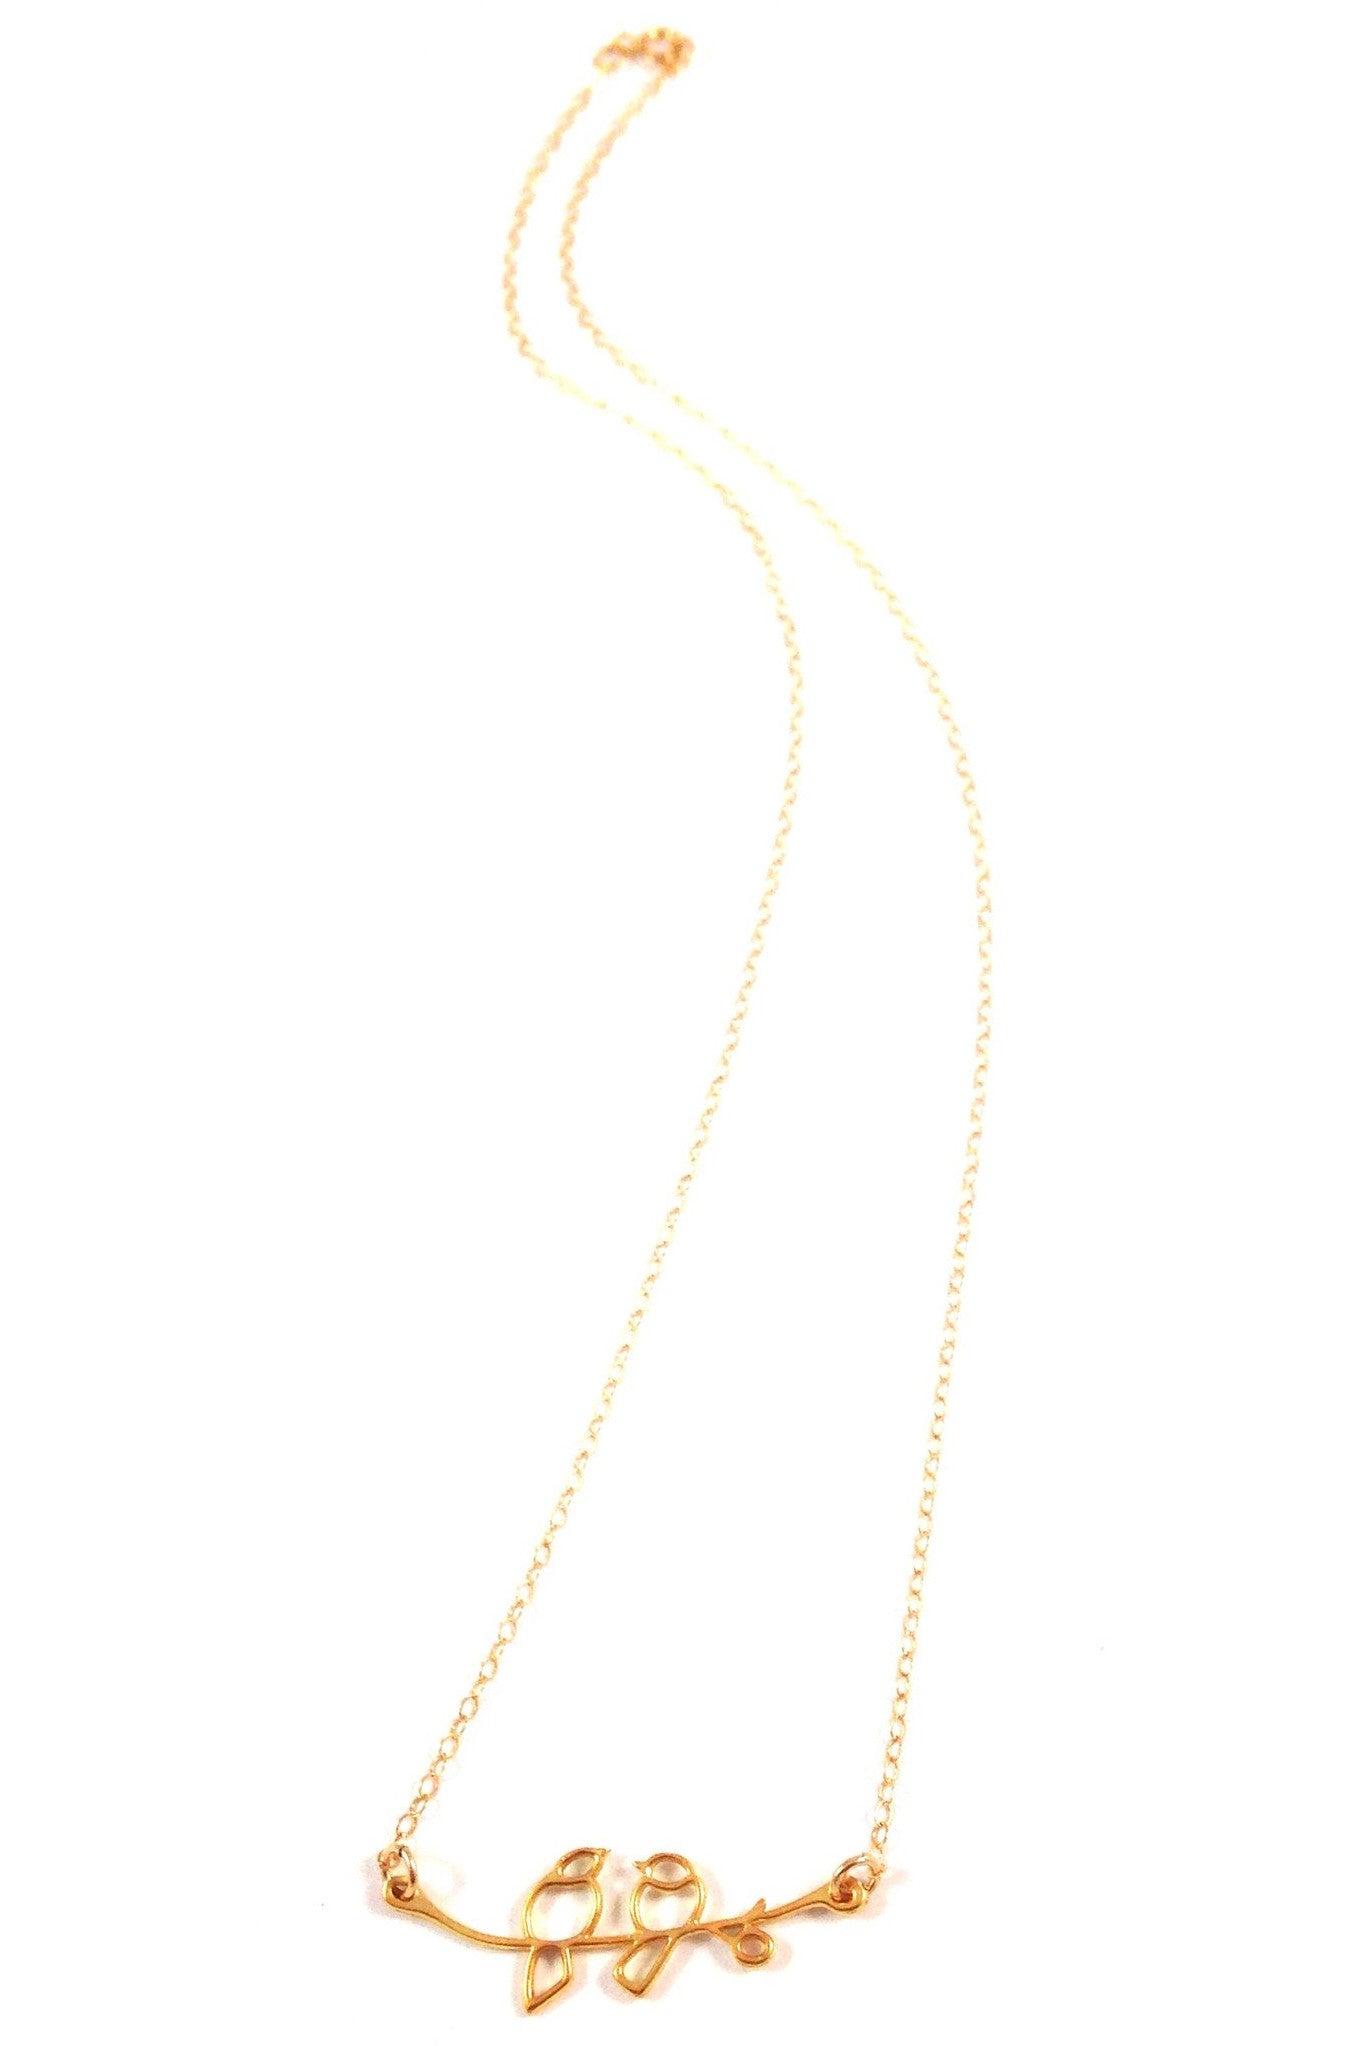 Love Birds Necklace, $34 | 14kt Gold-Filled | Light Years Jewelry